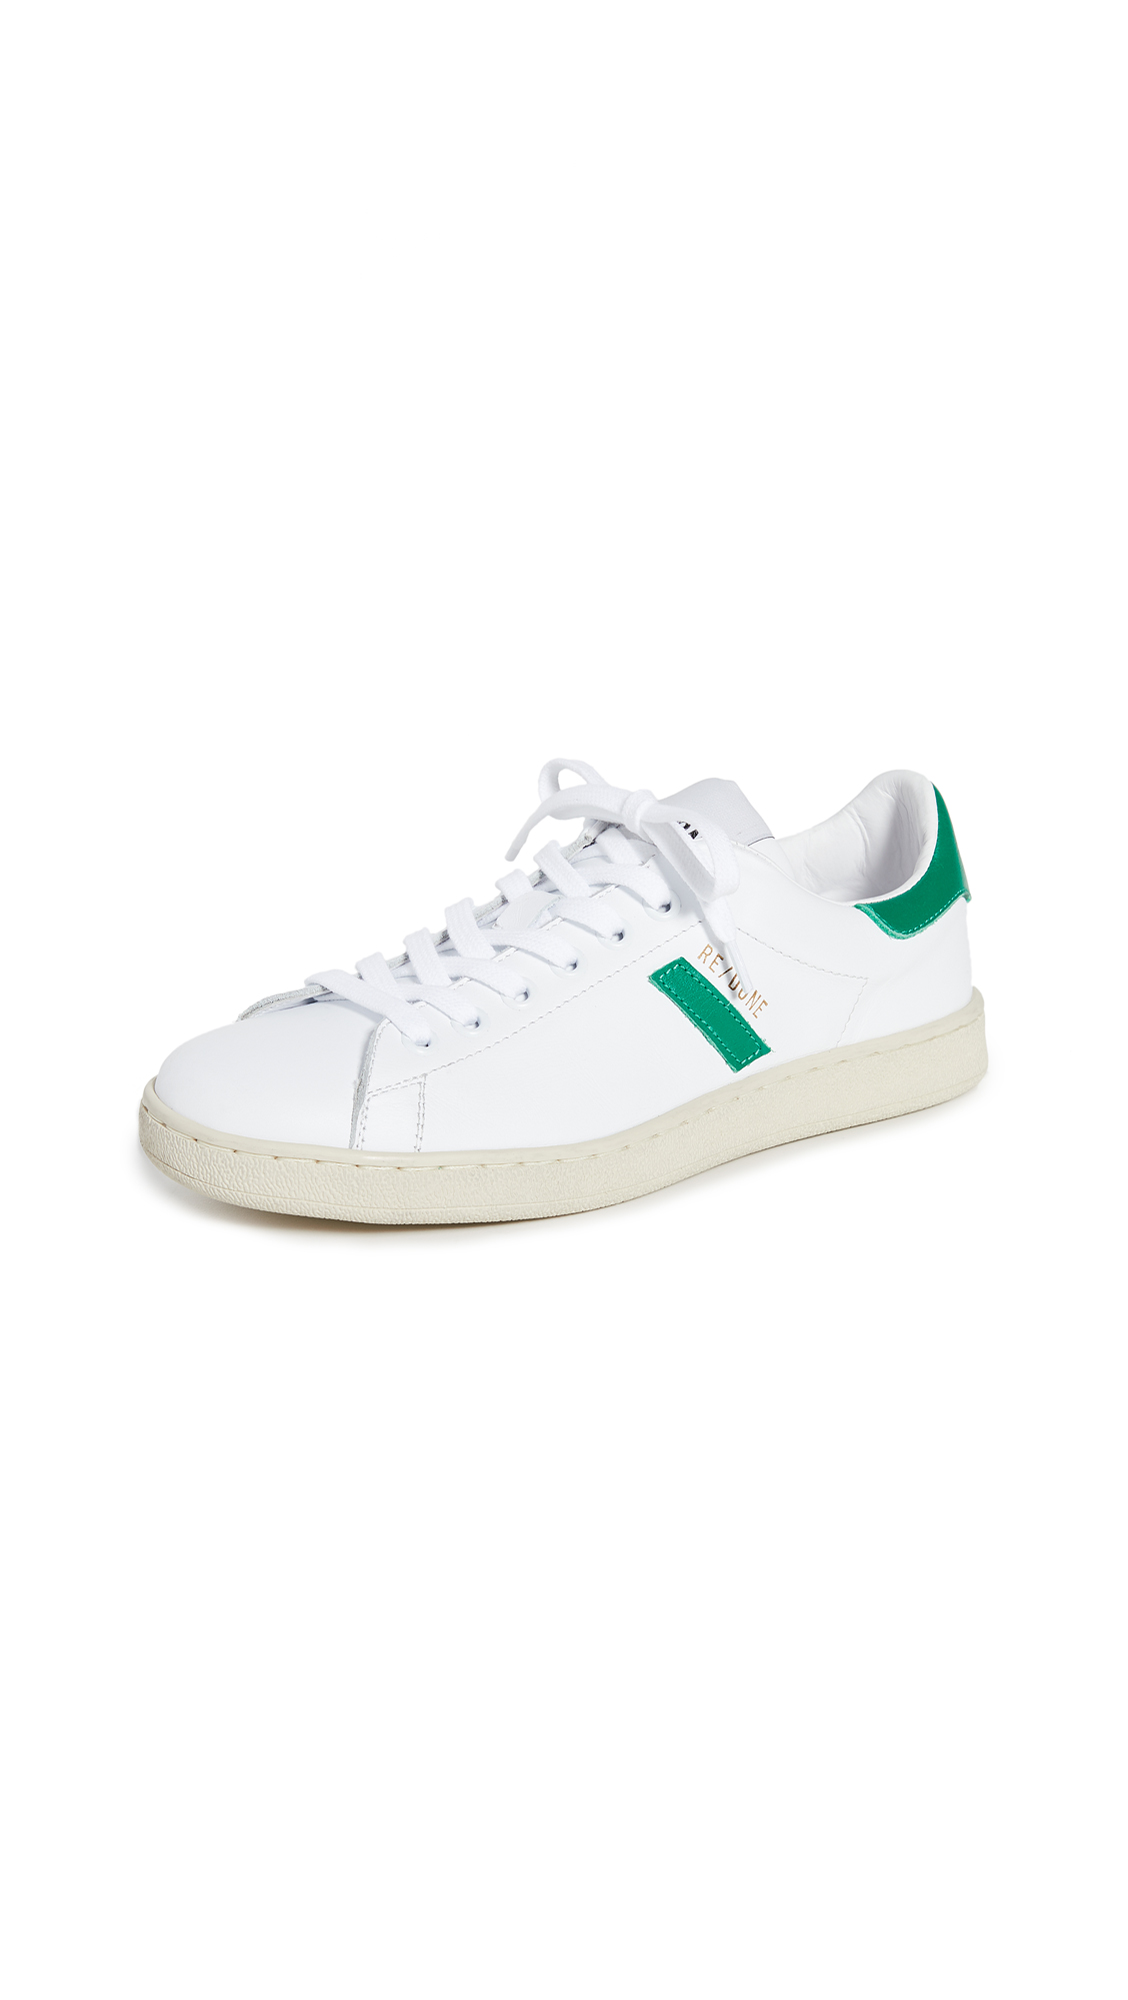 RE/DONE '70s Tennis Shoes - 30% Off Sale